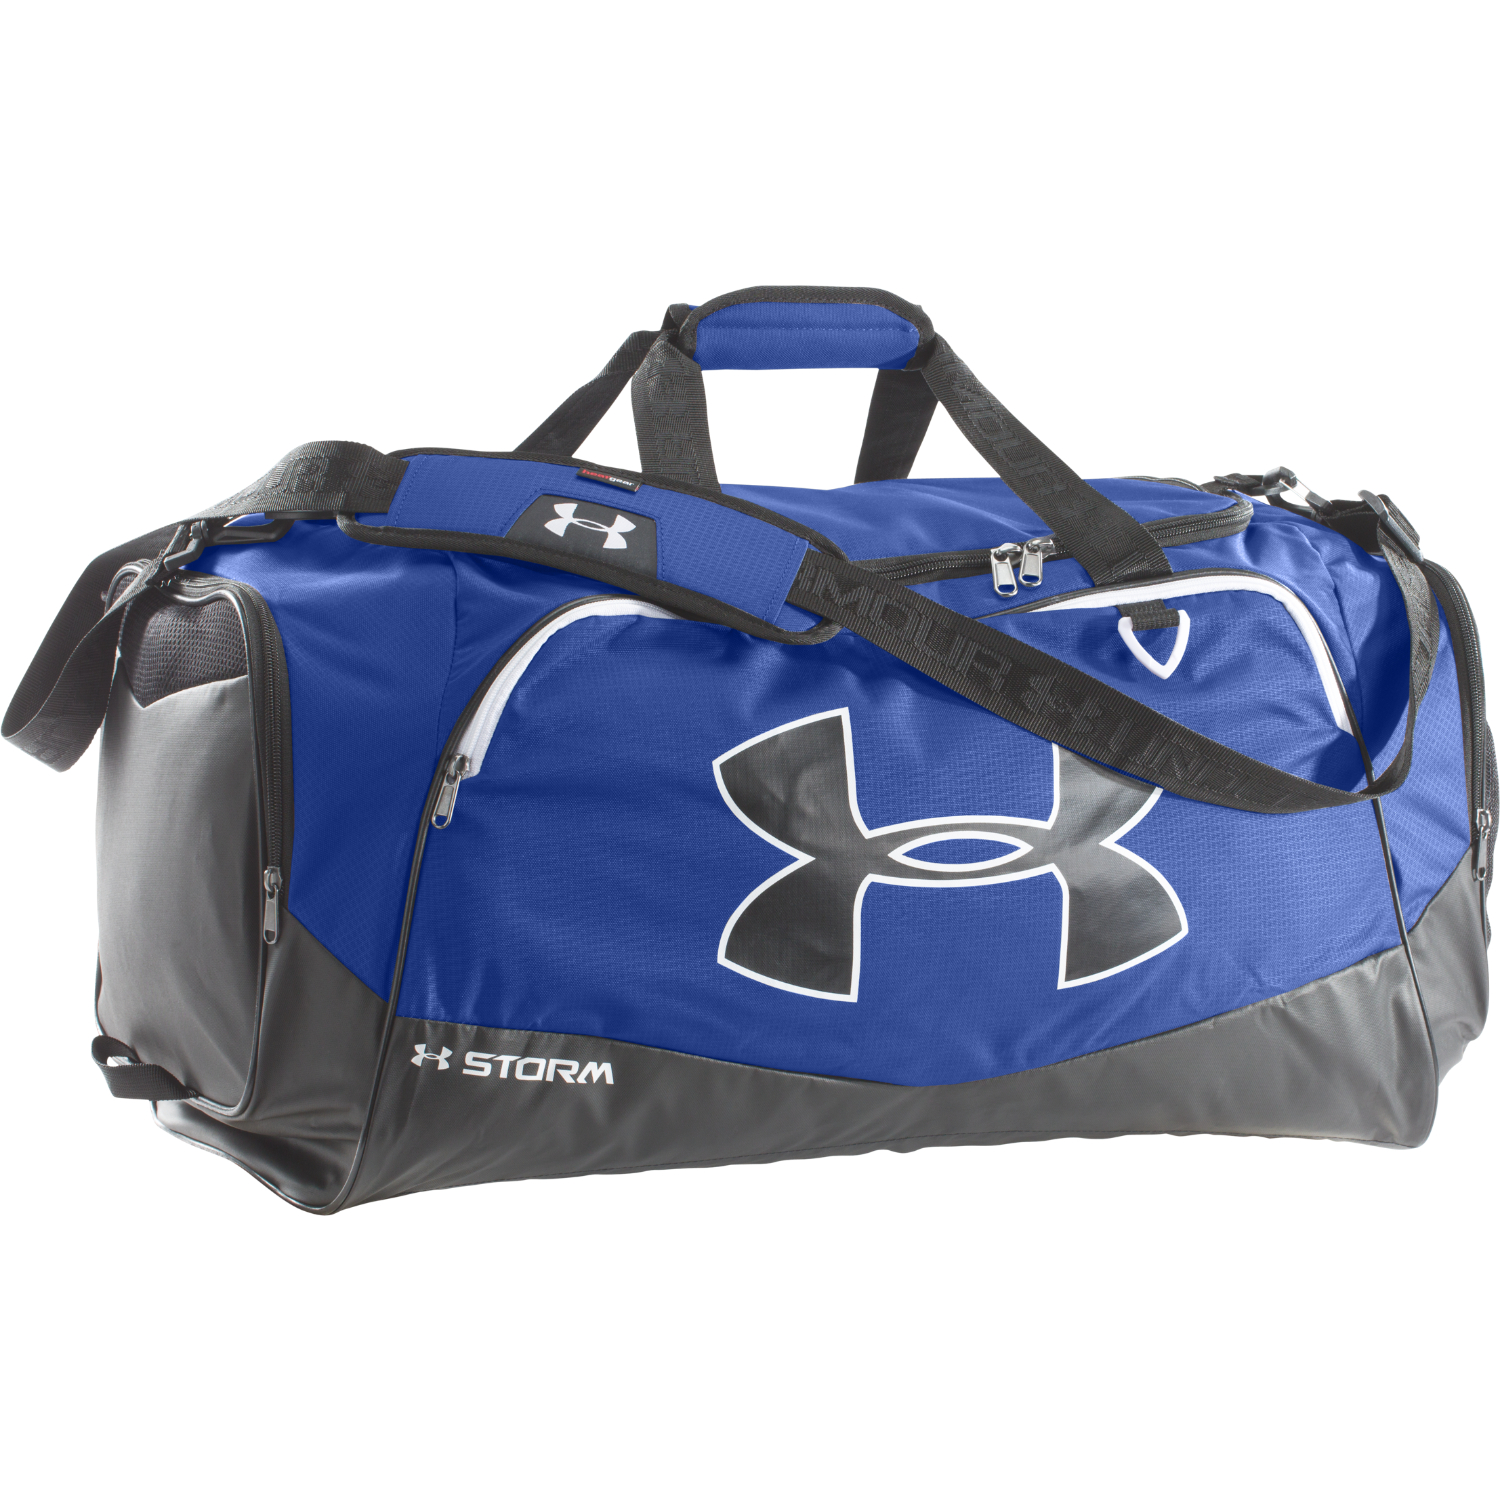 asics gear bag 2016